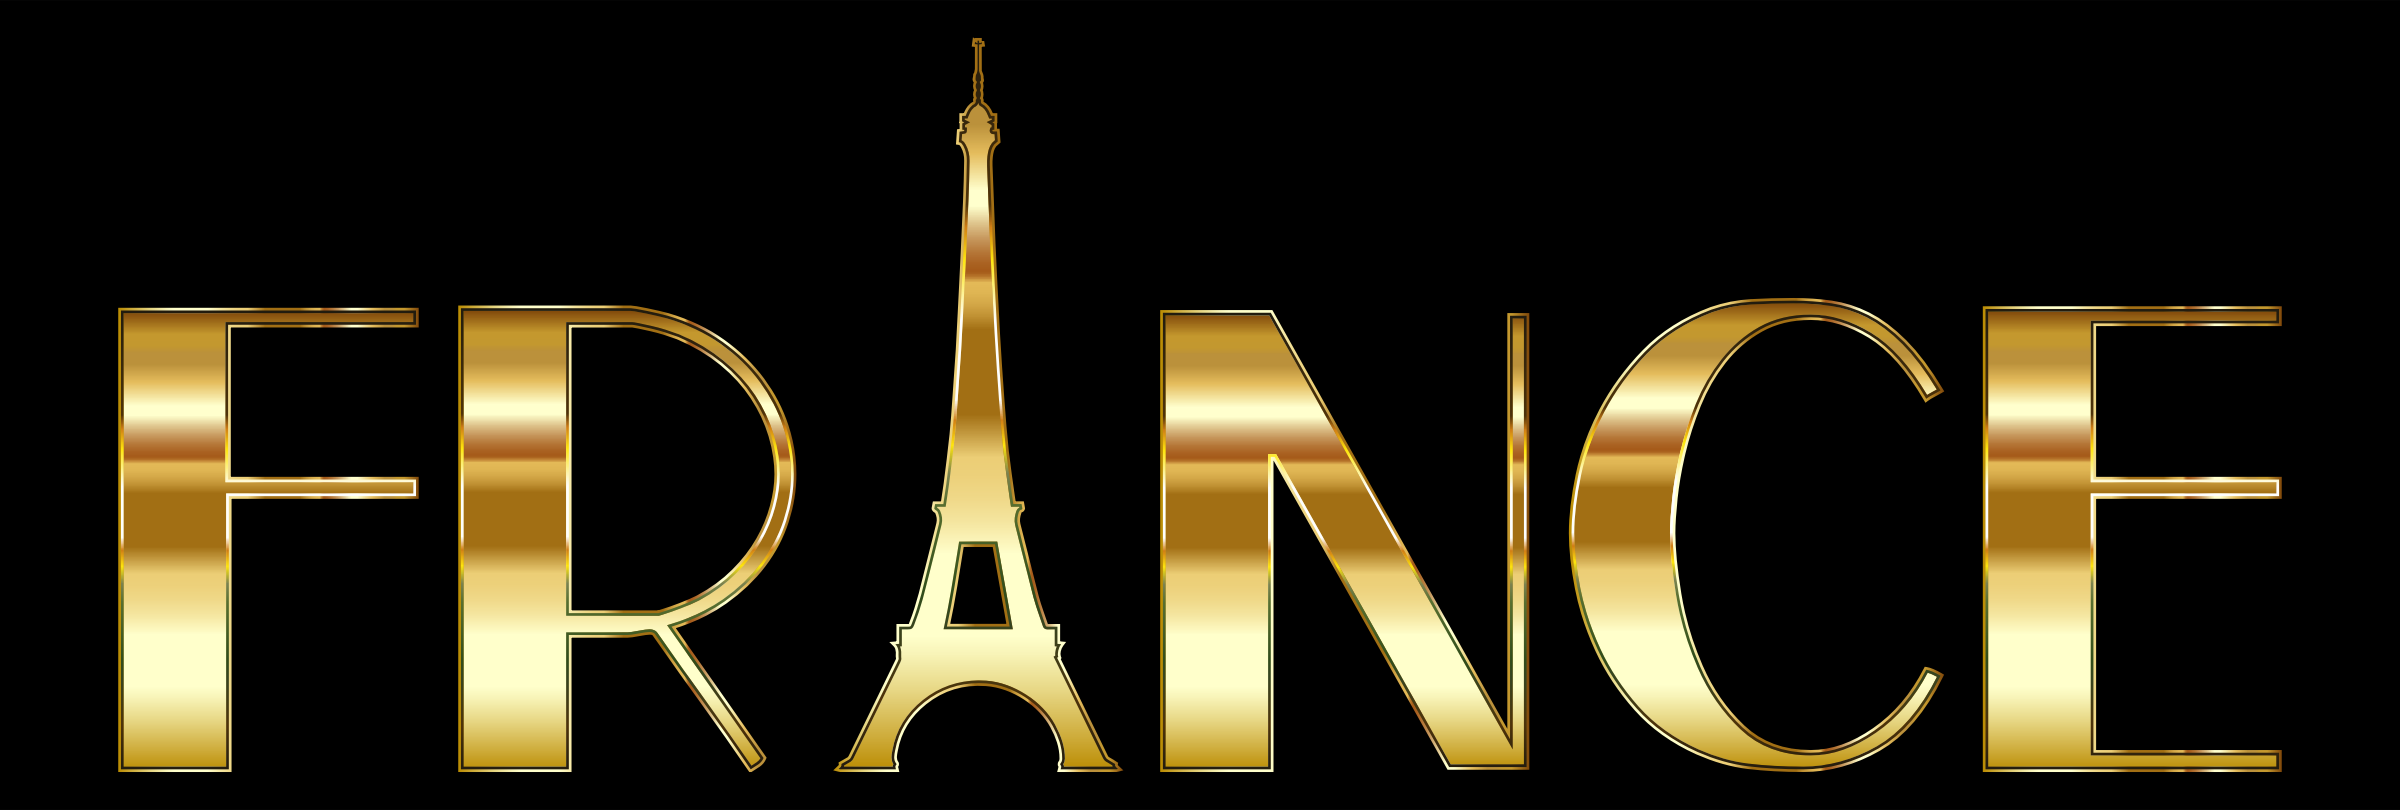 France Typography Gold With Black Background by GDJ